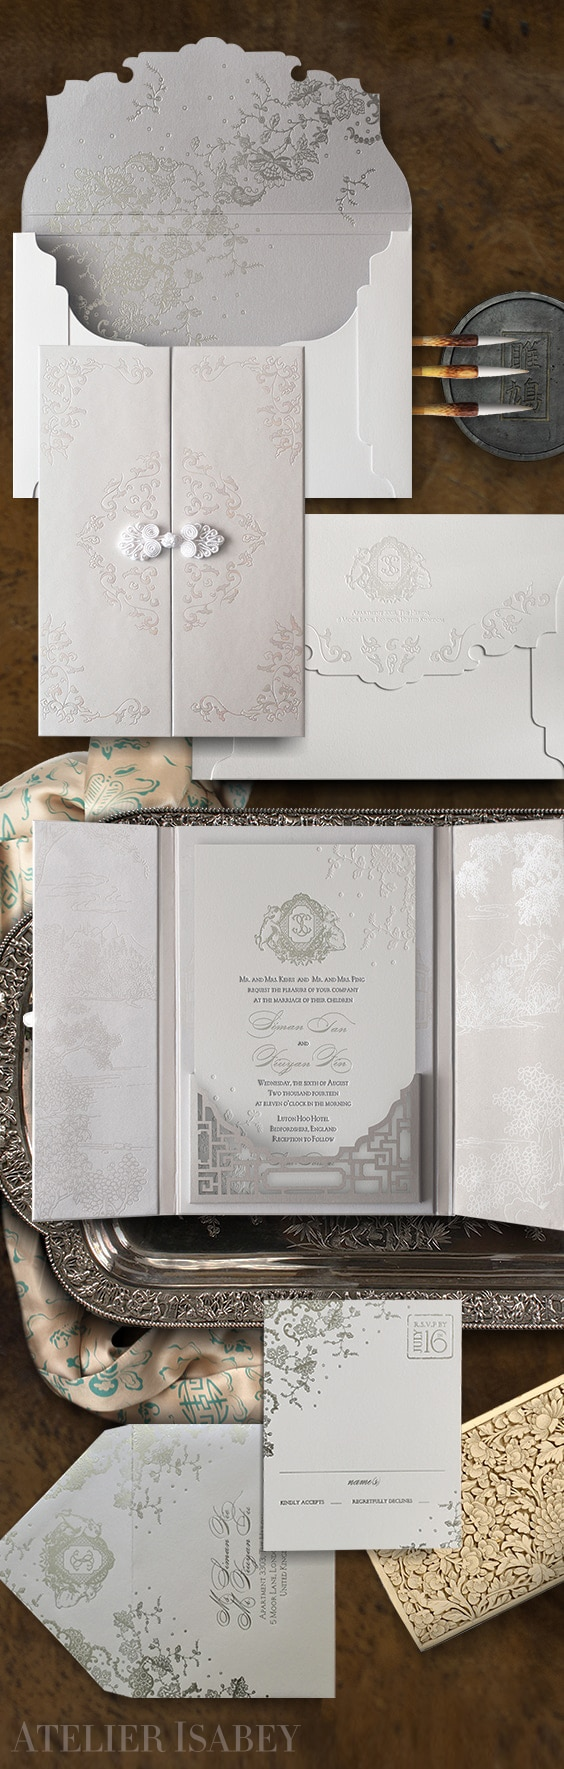 East meets West luxury wedding invitation